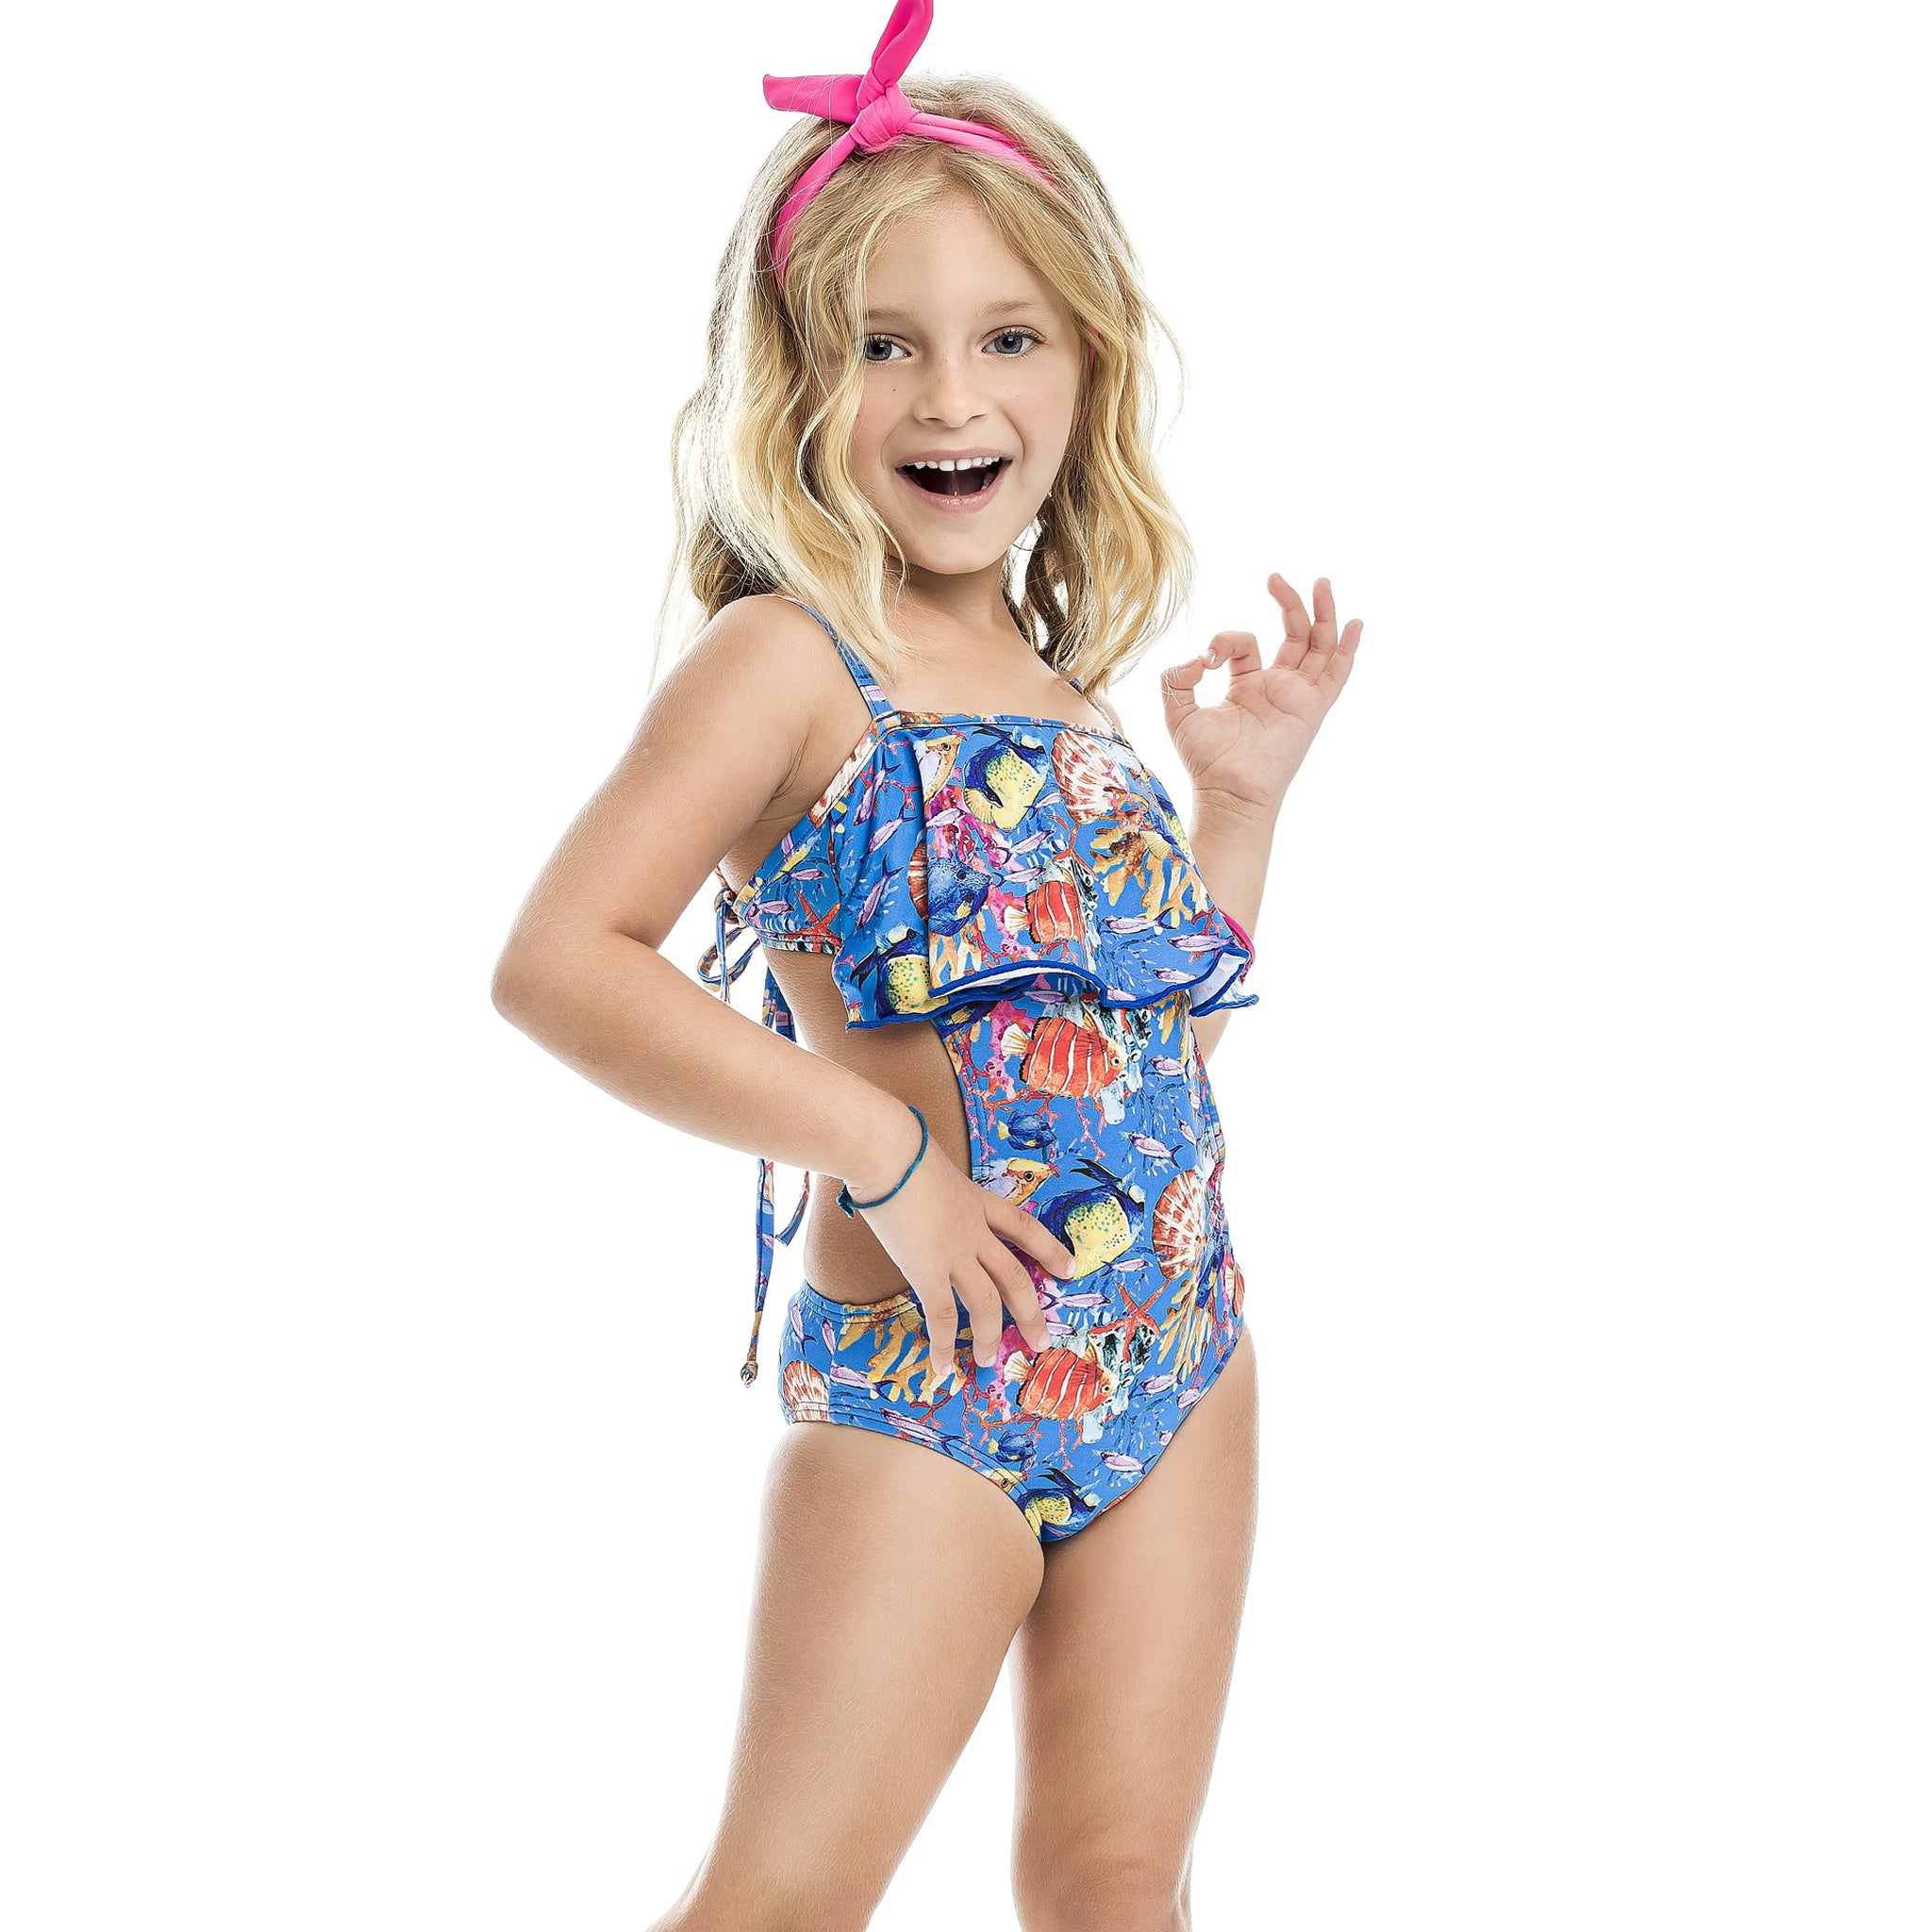 Girl's ocean blue one piece swimsuit UPF 50+ - Diva Brazilian Swimwear Collection